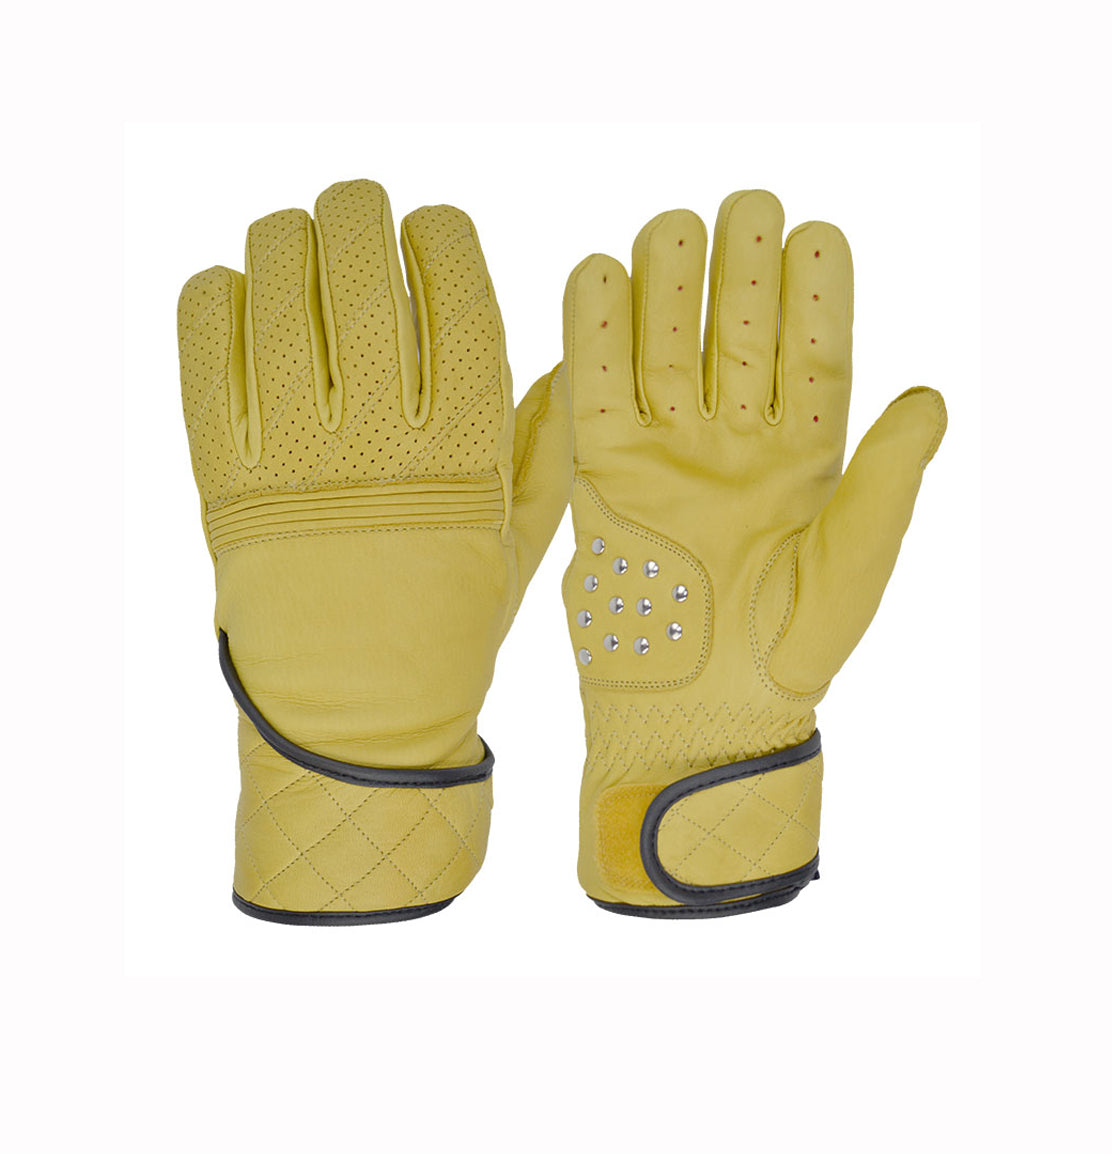 Goldtop Flat tracker motorcycle gloves